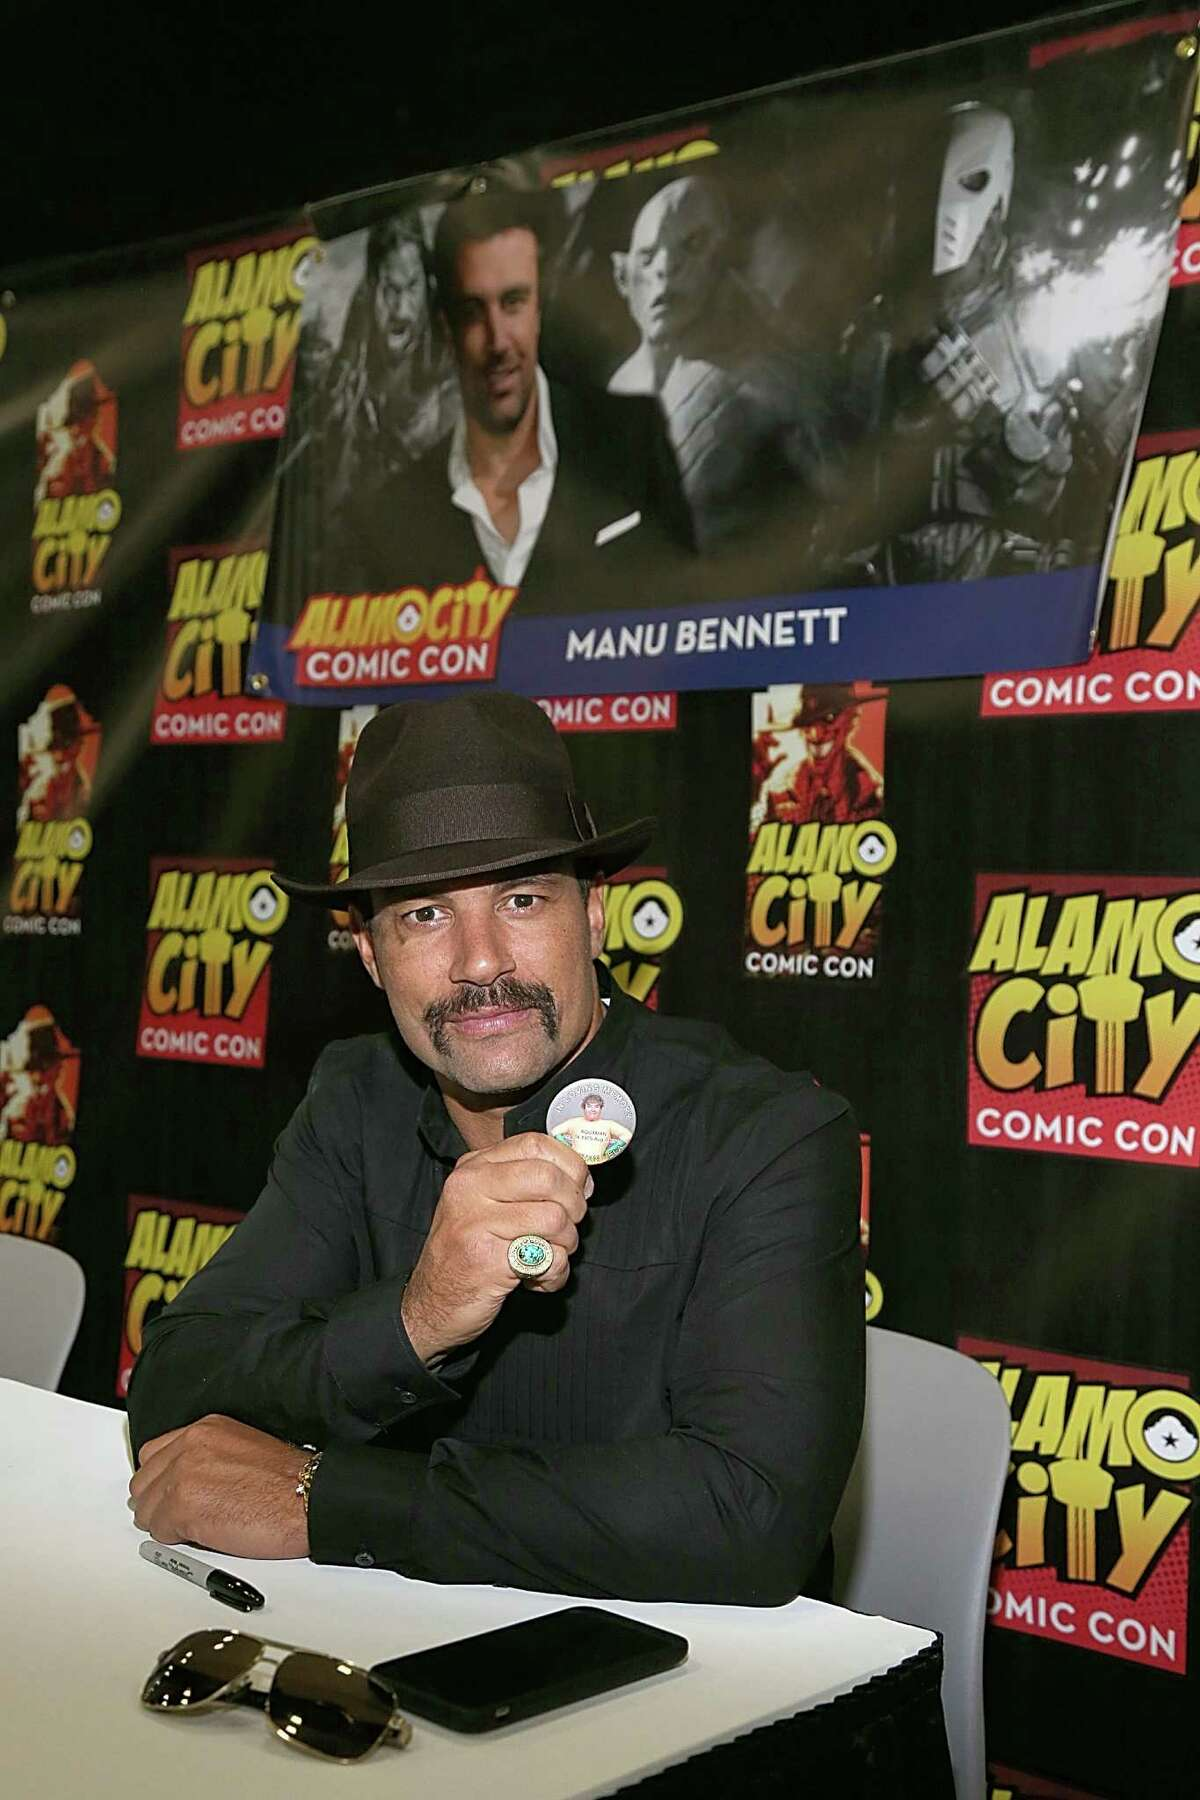 SAN ANTONIO, TX - SEPTEMBER 12: Manu Bennett poses in between meeting with fans during the Alamo City Comic Con at Henry B. Gonzalez Convention Center on September 12, 2015 in San Antonio, Texas.